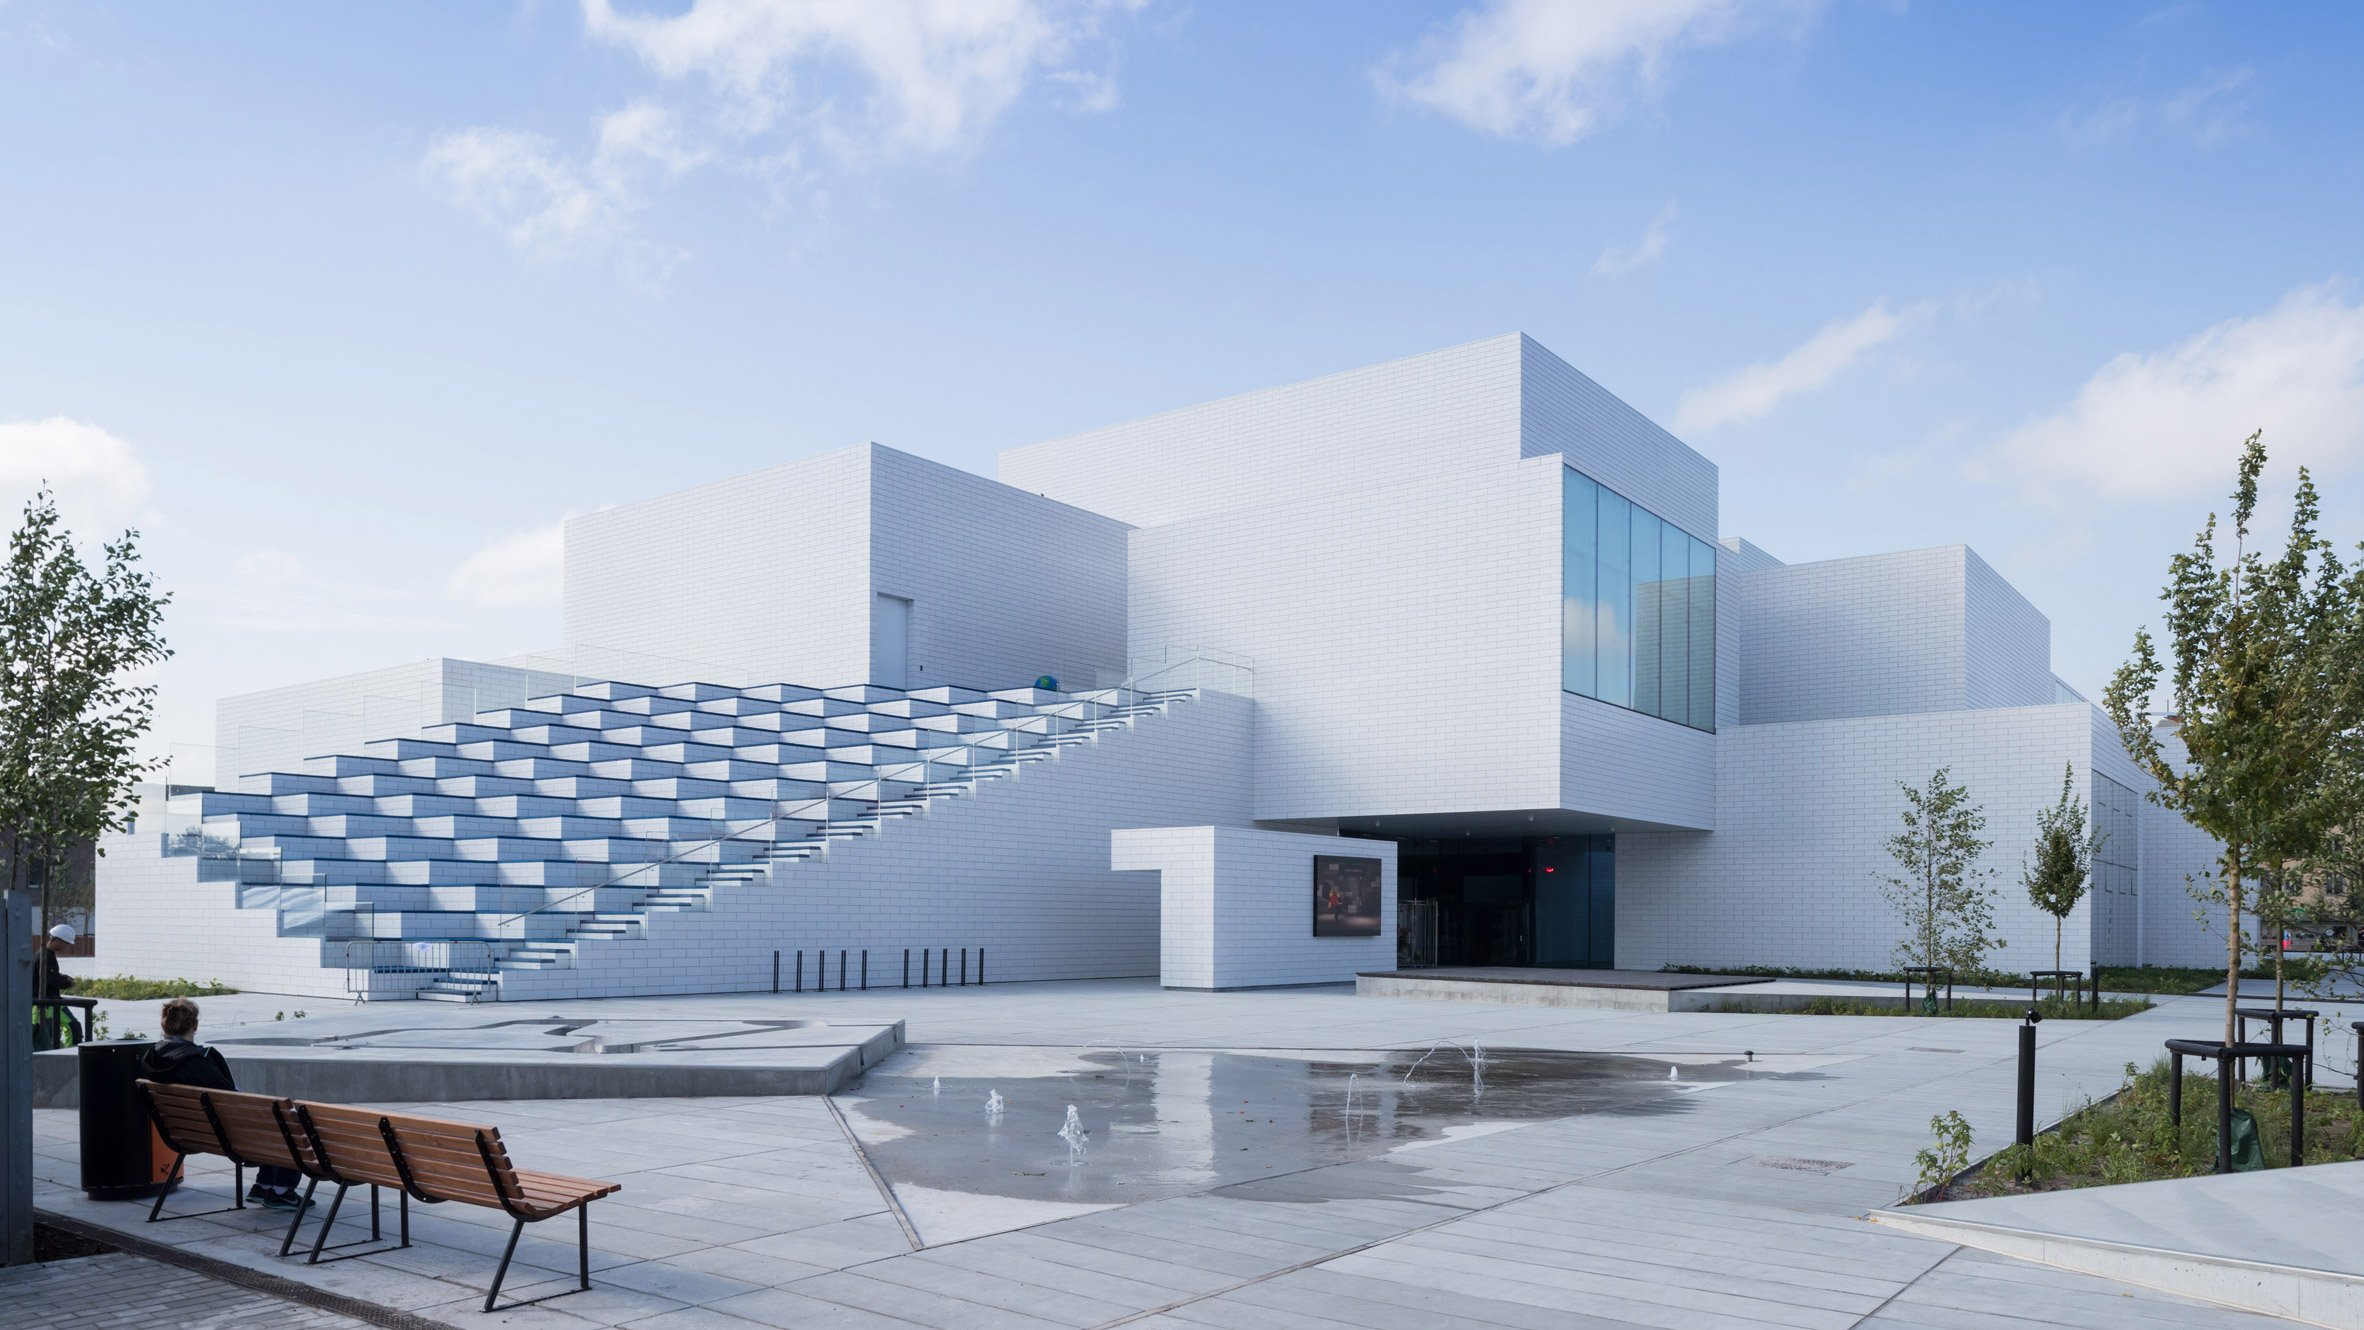 BIG completes Lego visitor centre shaped like a stack of building blocks